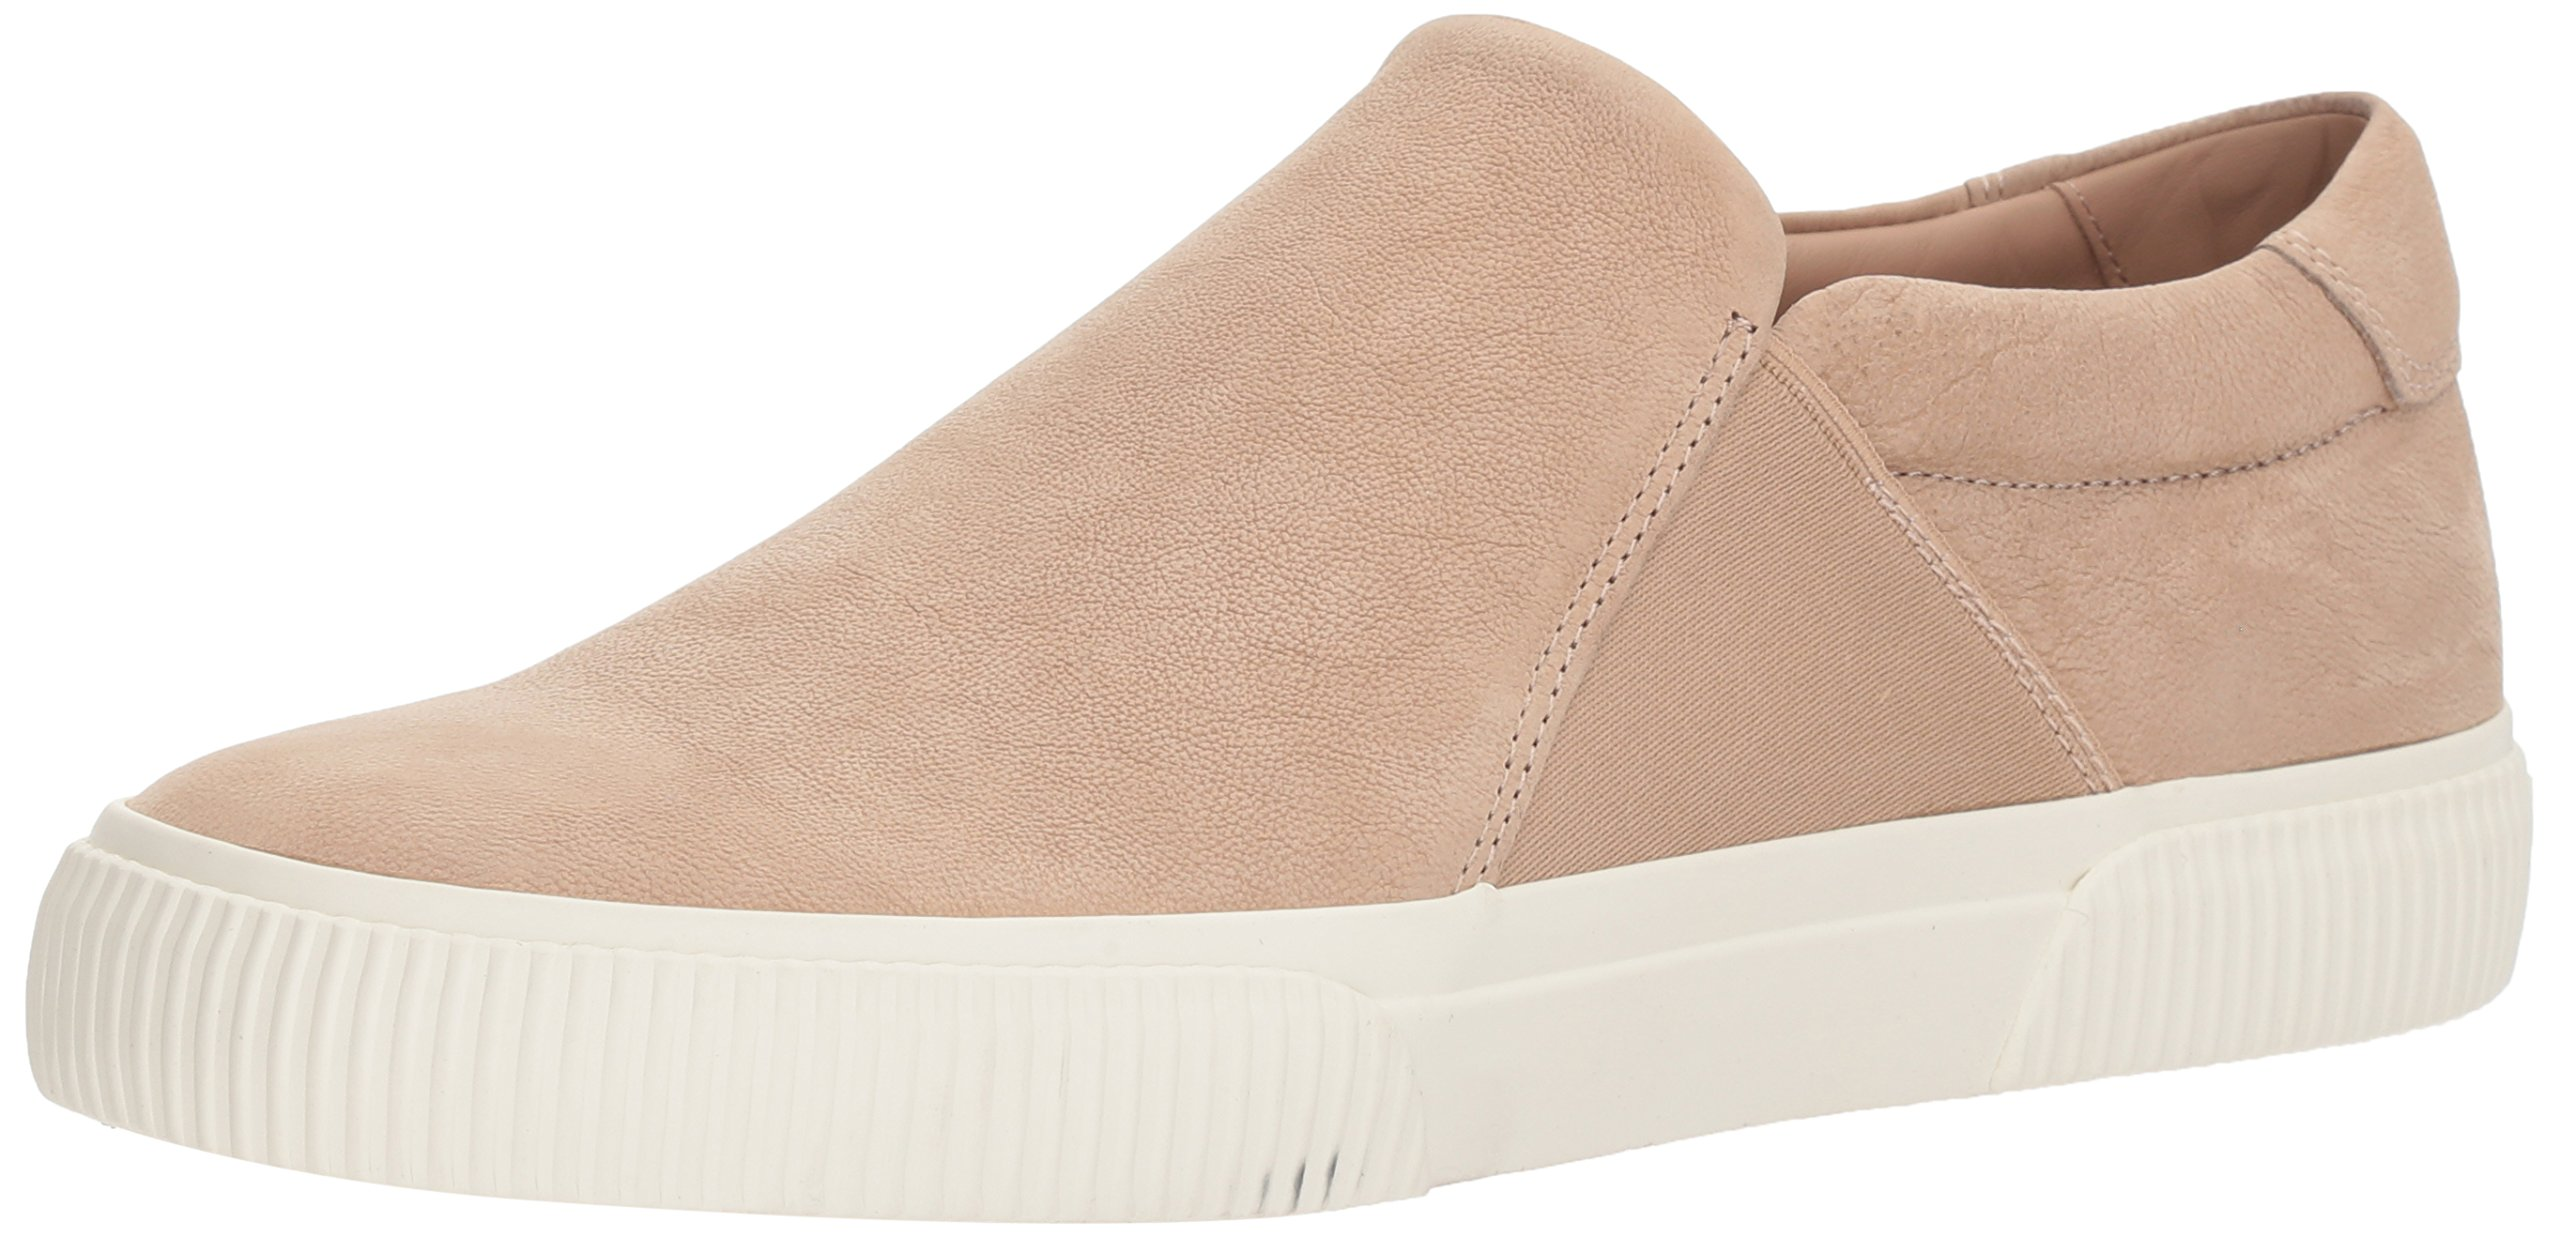 Vince Women's Knox Sneaker, Oatmeal, 6.5 Medium US by Vince (Image #1)